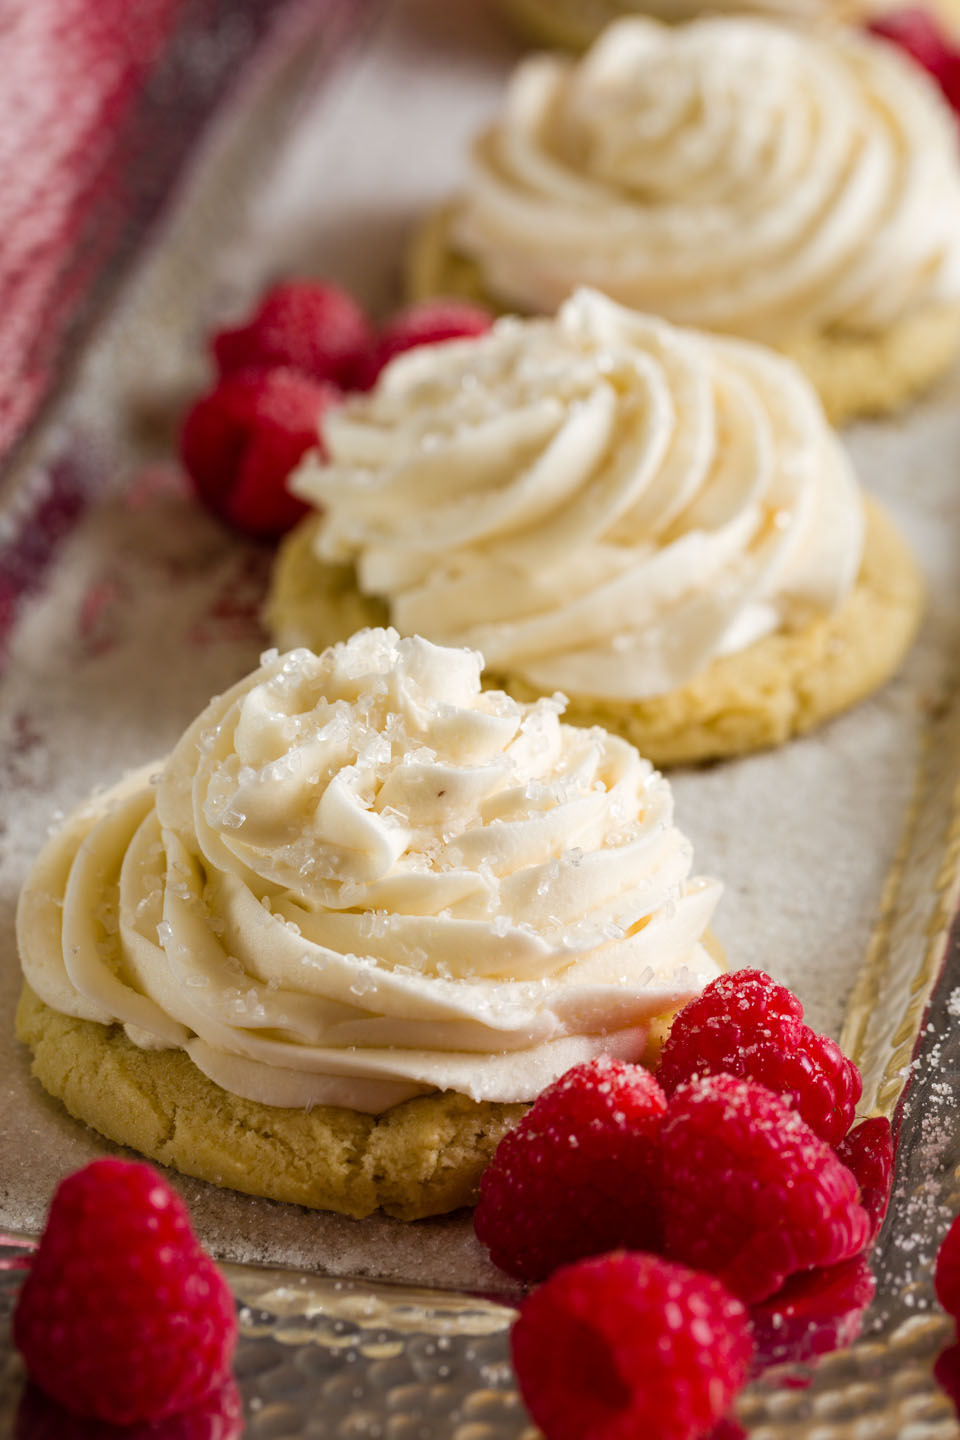 Frosted cookies with raspberries